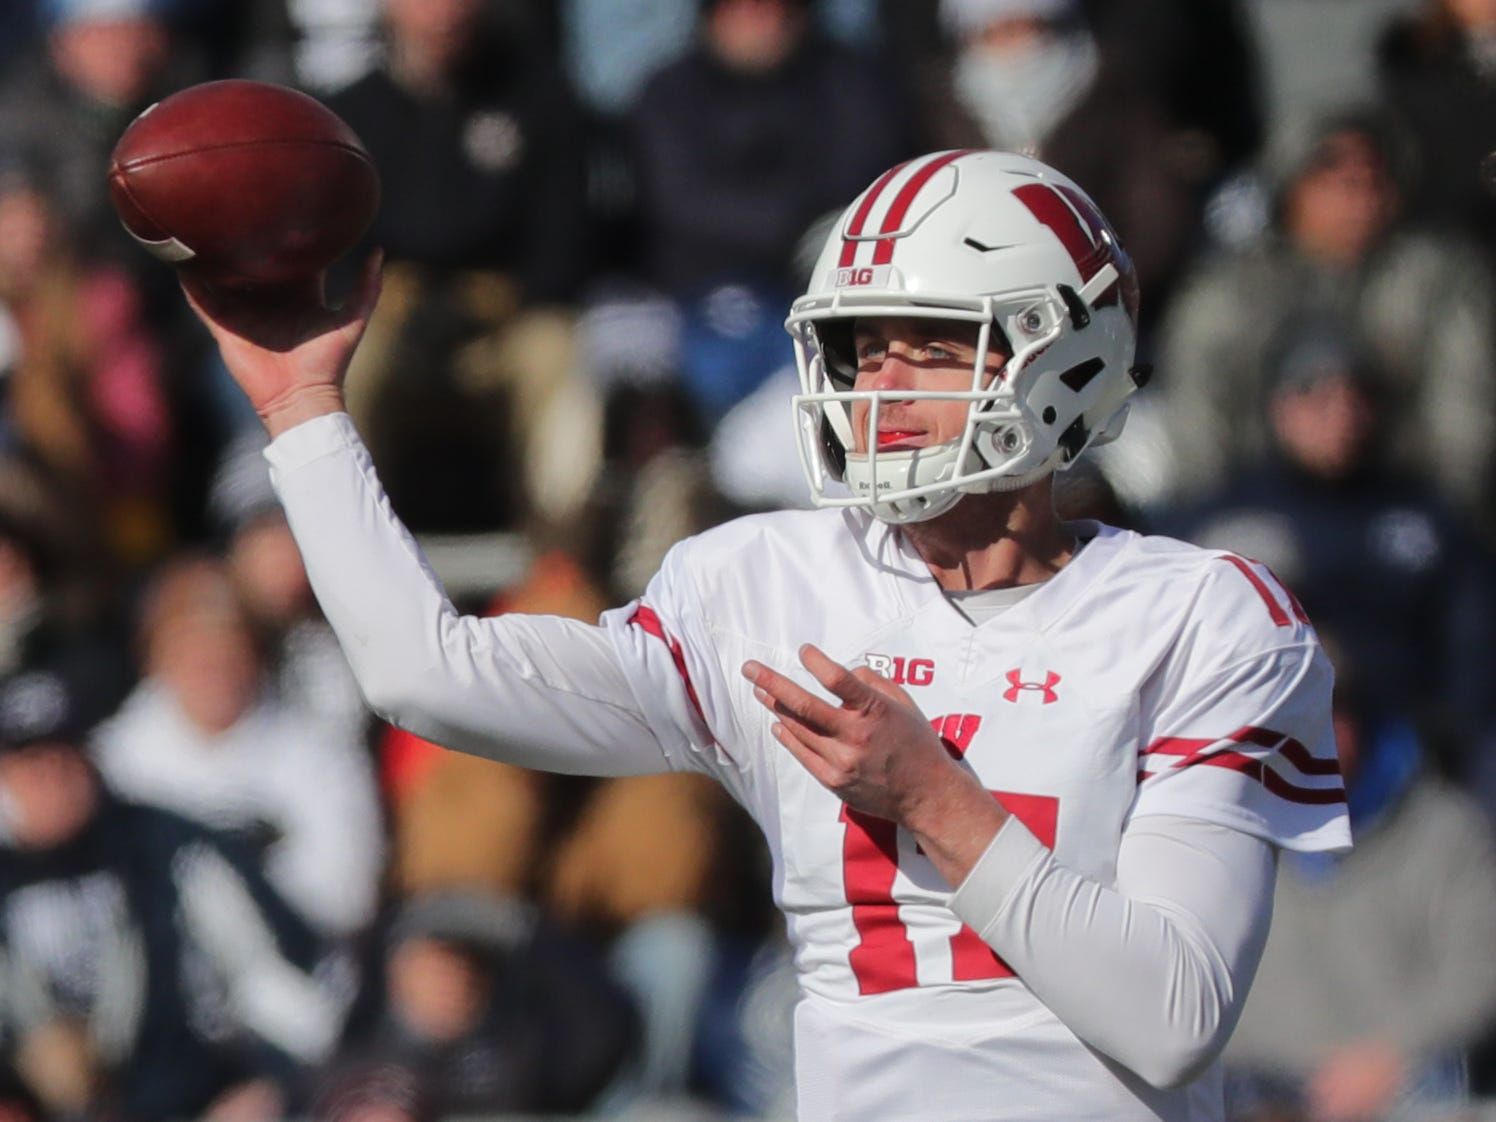 Wisconsin quarterback Jack Coan dumps off a pass against Penn State during the first quarter Saturday.